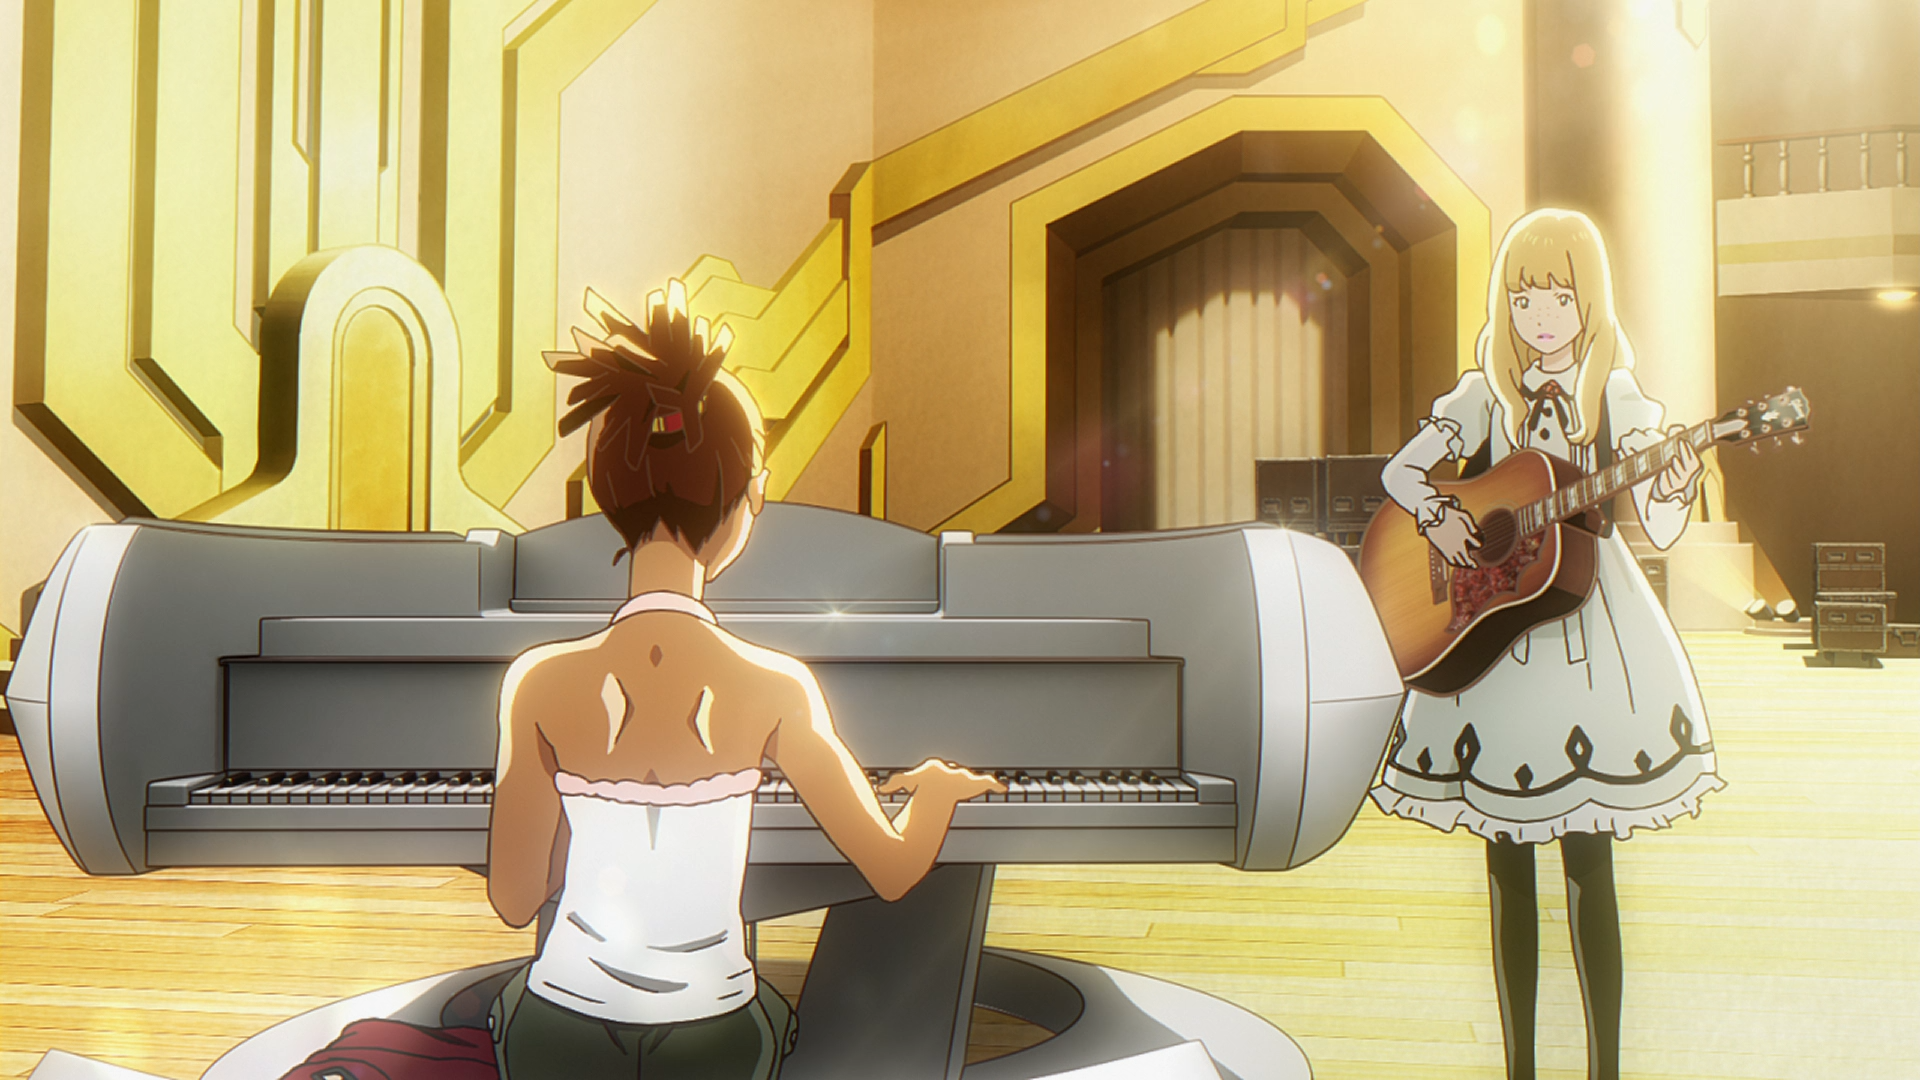 Carole and Tuesday - 02 (WEB-DL 1920x1080 x264 AAC Rus + Jap).mkv_snapshot_16.12.972.png